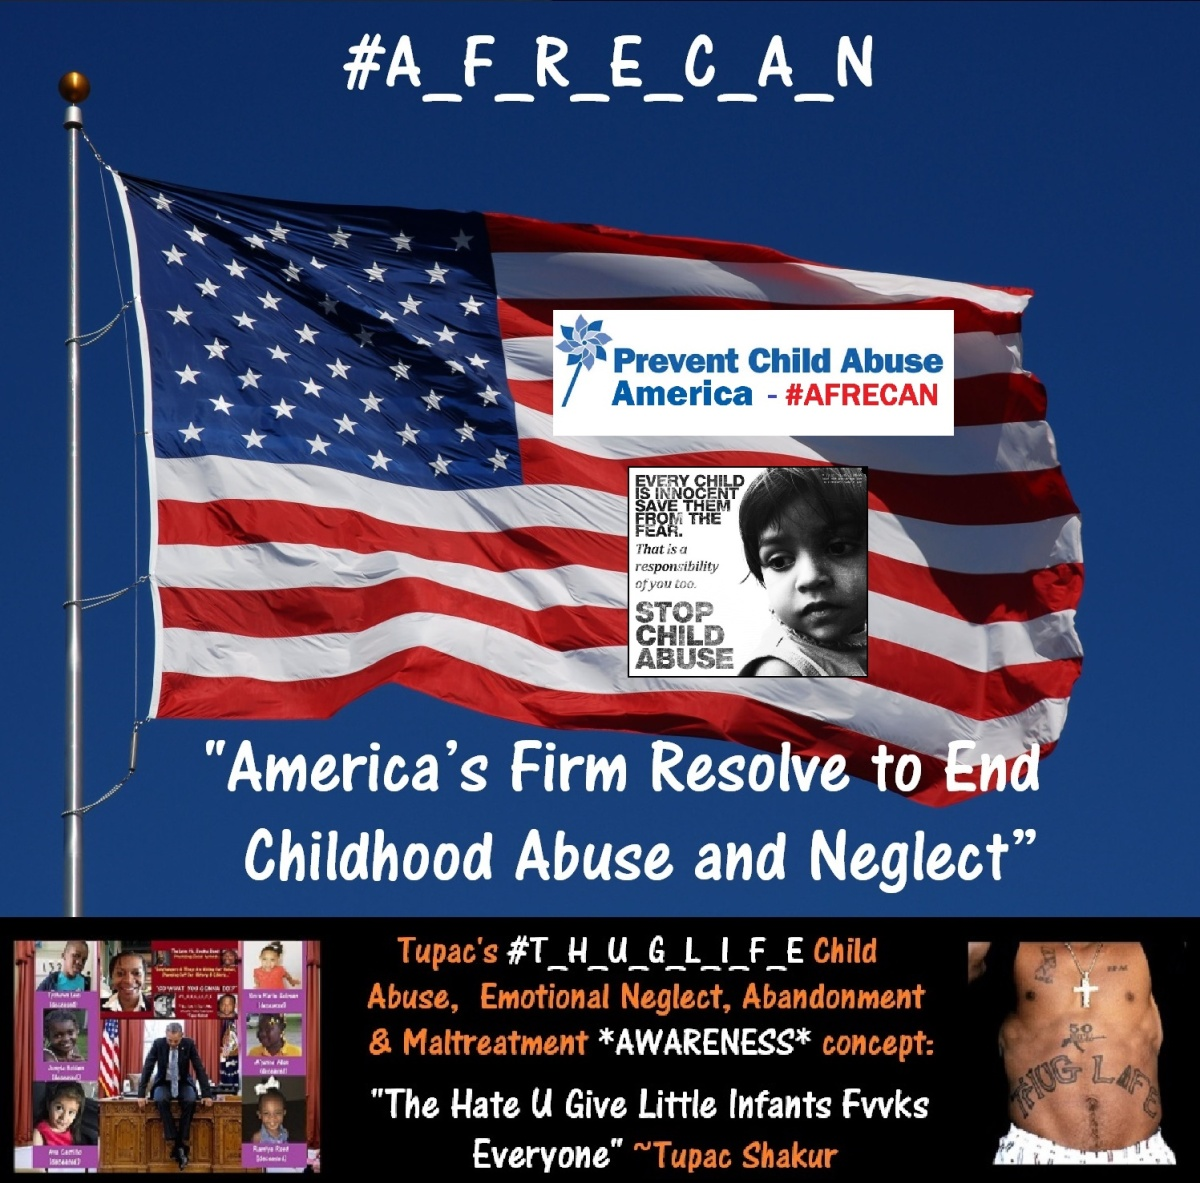 AFRECAN american flag